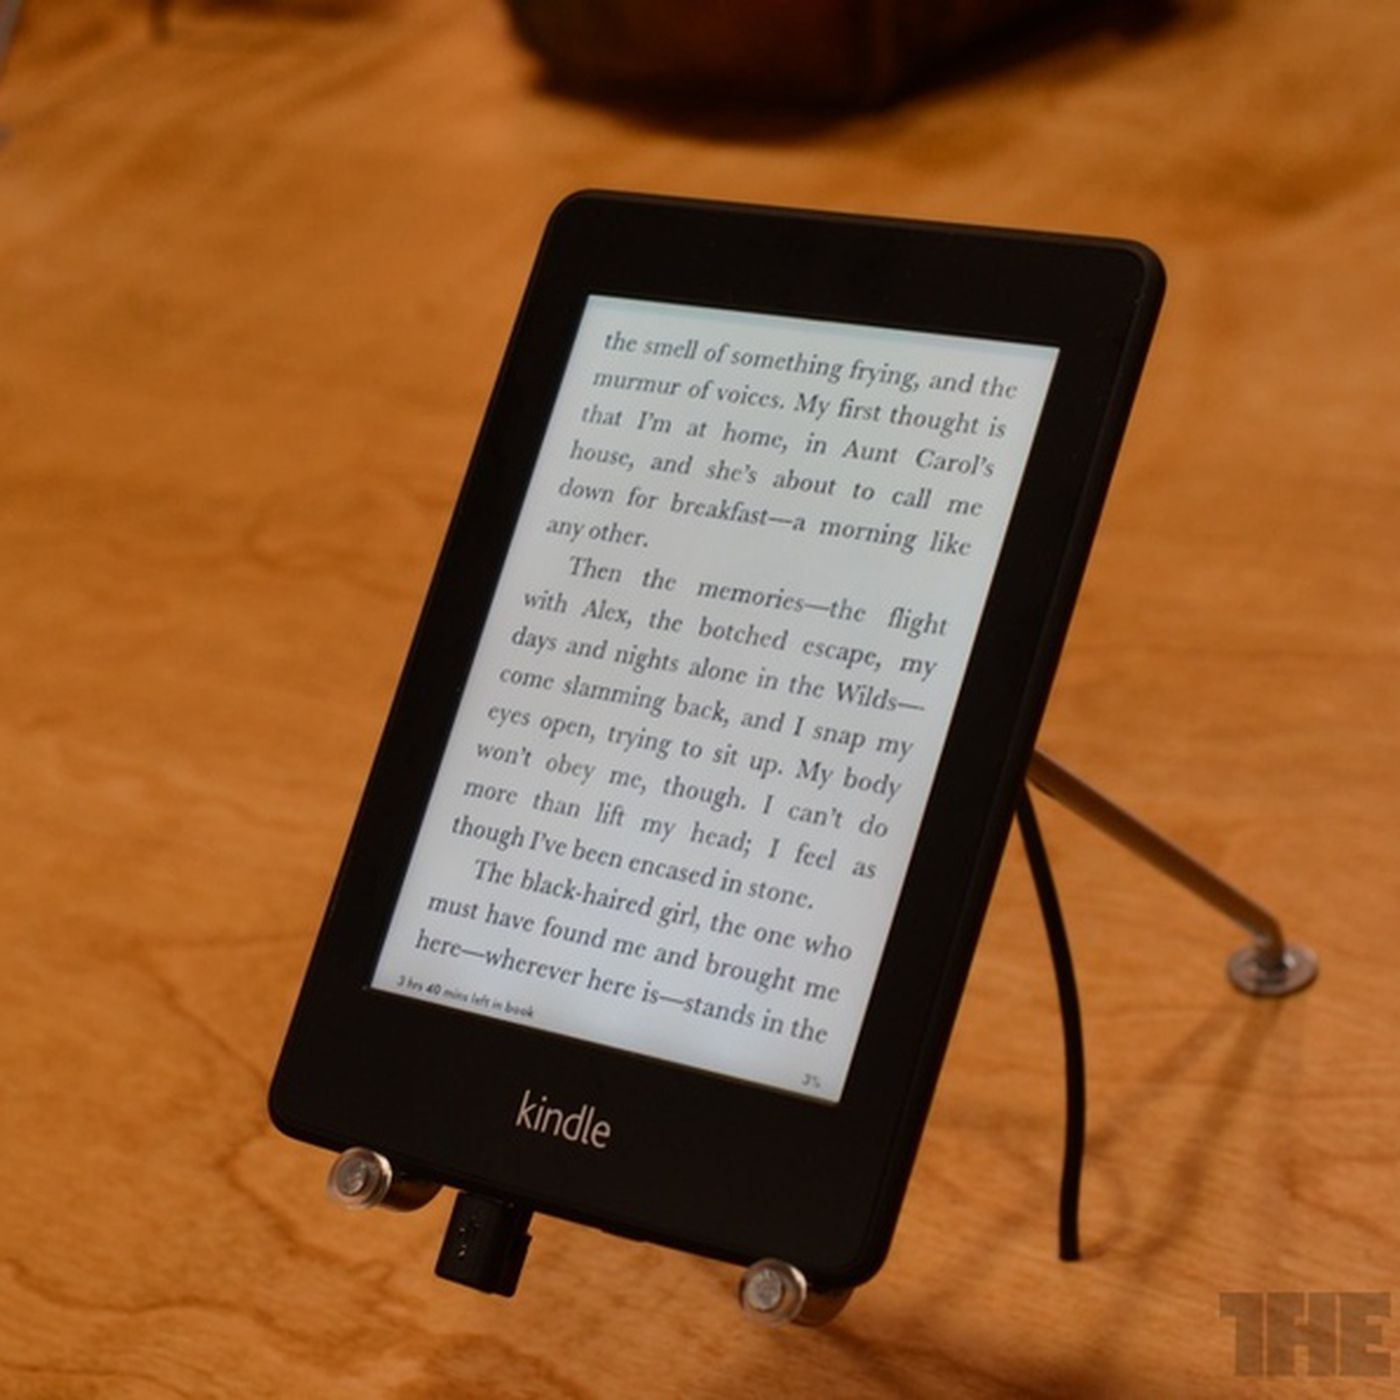 Even without audiobooks, the Kindle Paperwhite can still